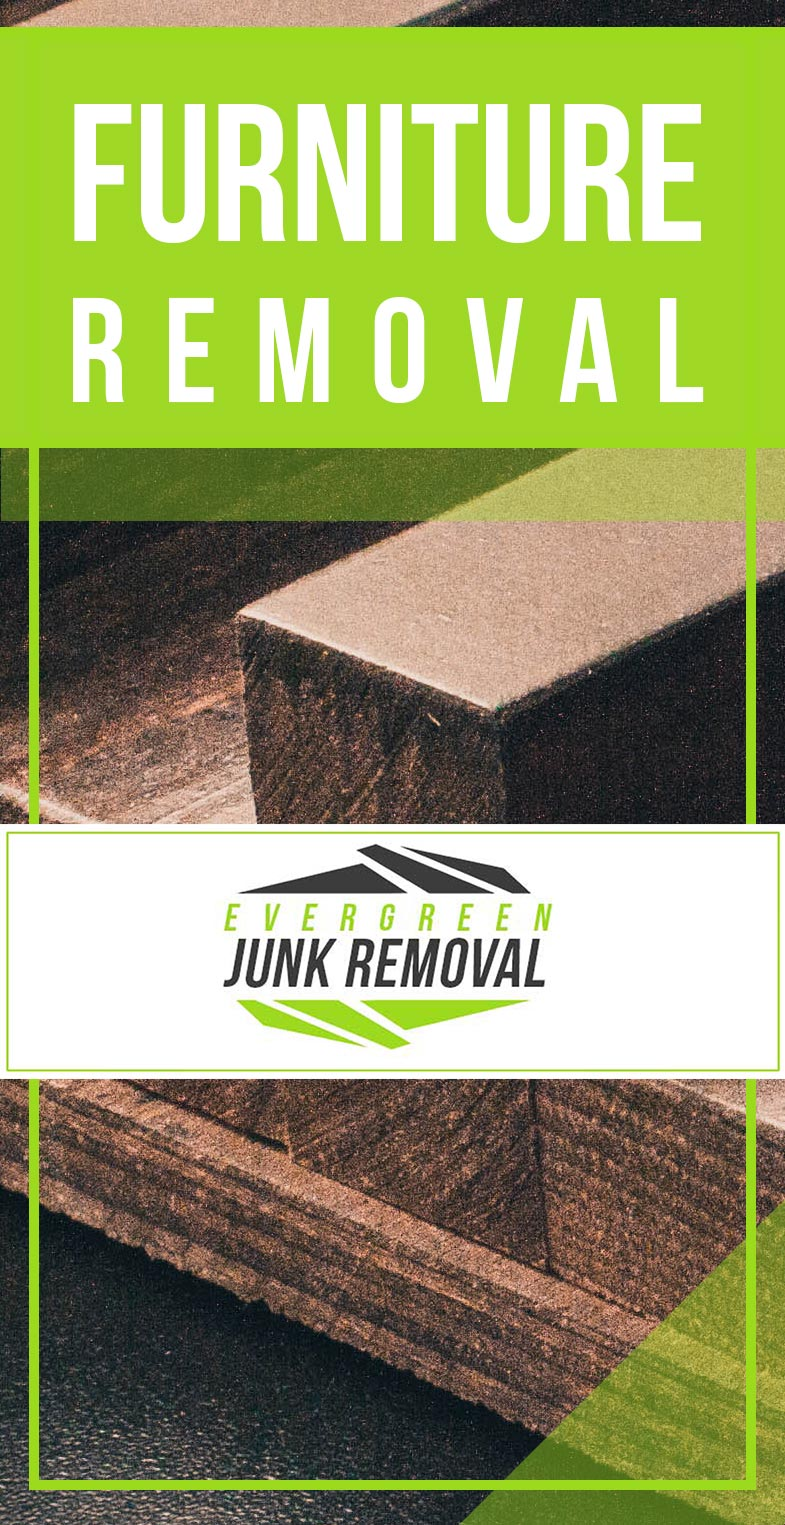 Crystal-Beach-Furniture-Removal